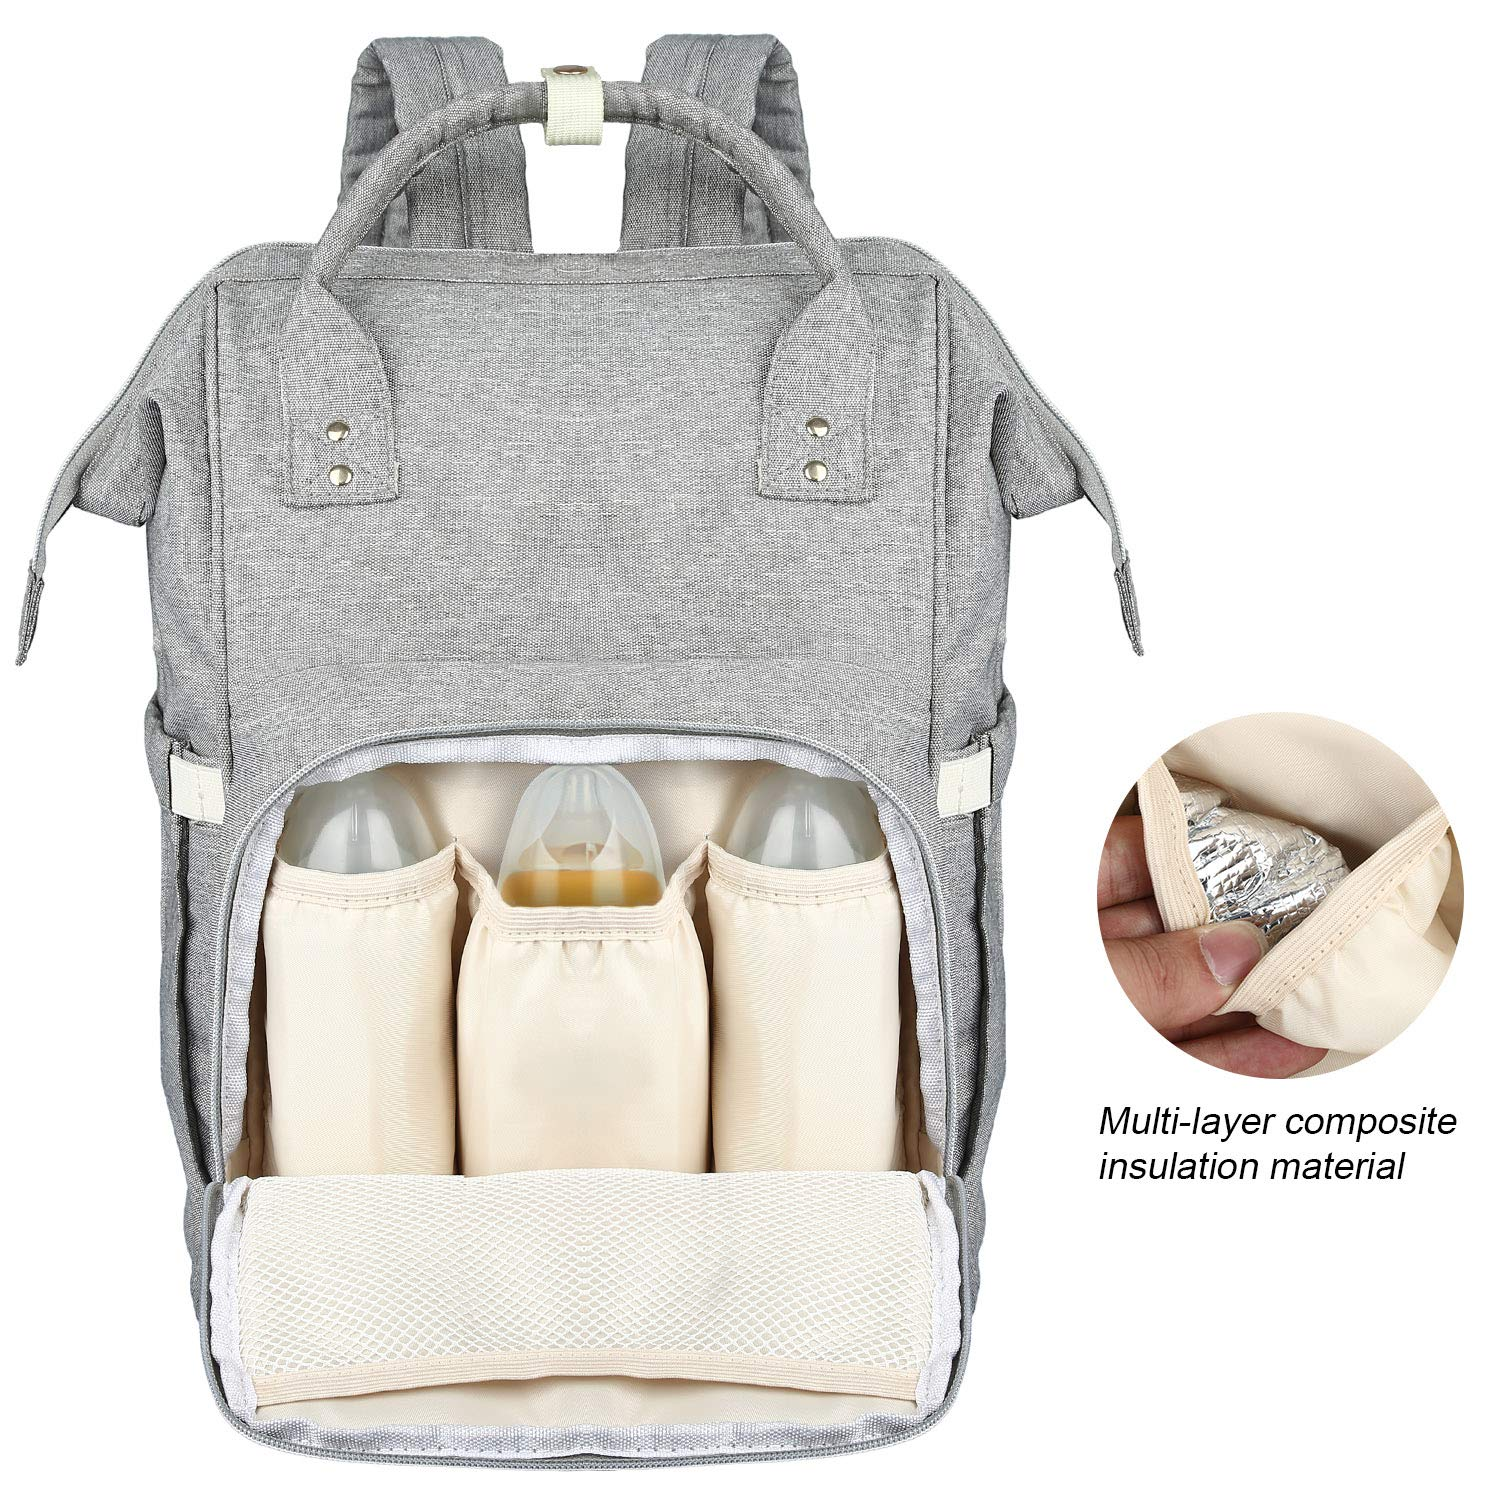 LONENESSL Diaper Bag Backpack Large Diaper Bag/Mommy Bag with Multiple Pockets and Extra Large Capacity, Stores up to 8 oz Bottles, Good for One Or Two Babies (Gray)